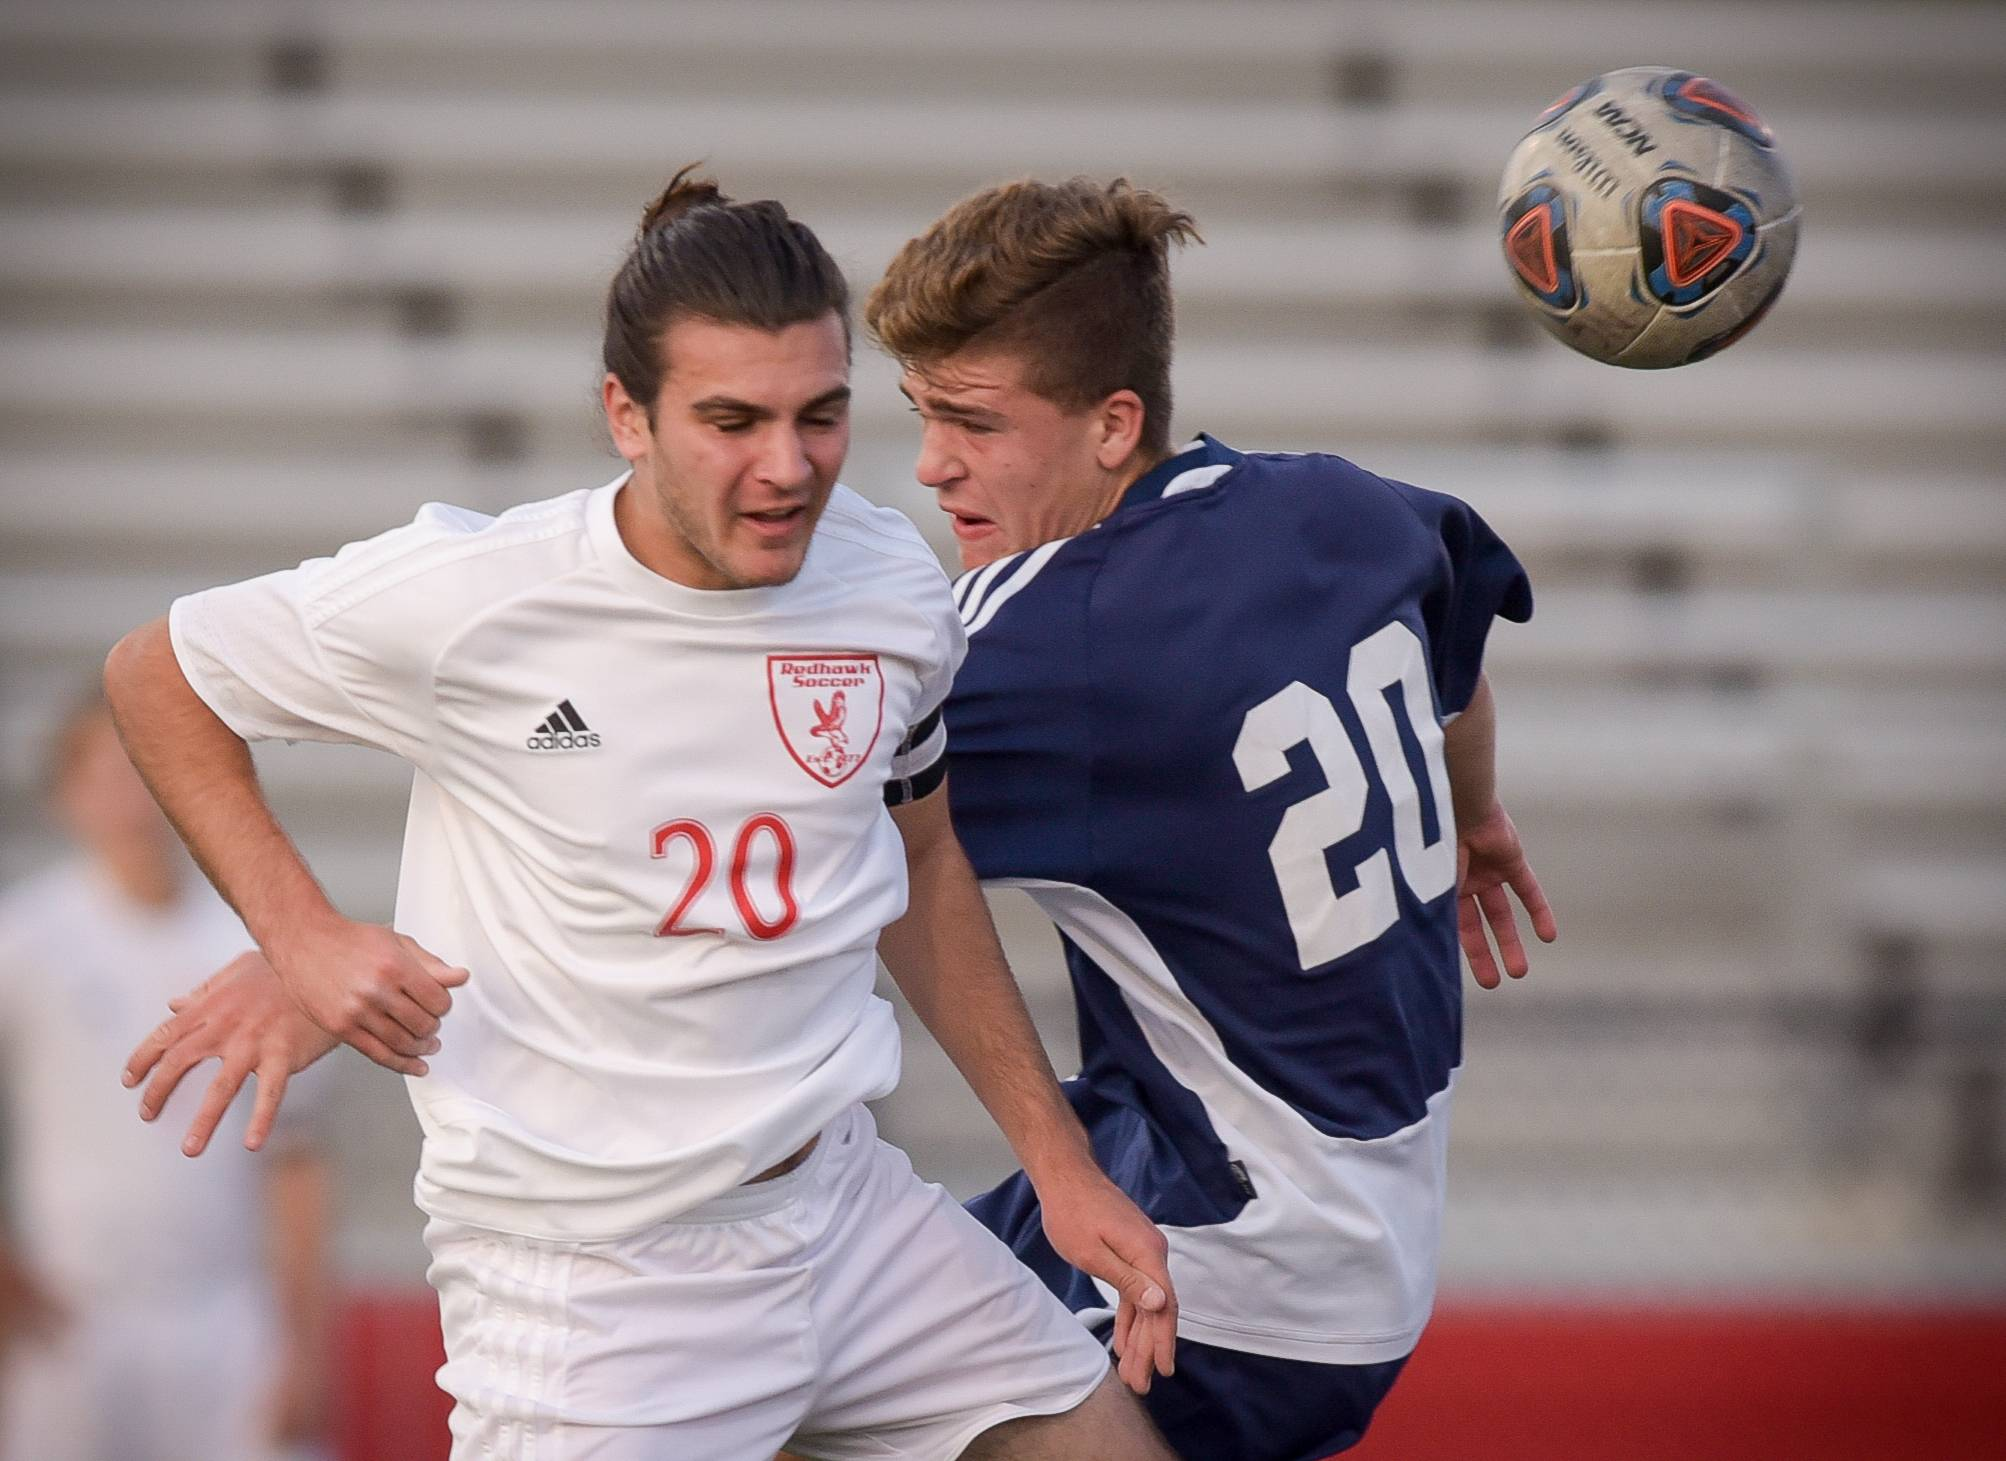 Naperville Central's Nate Zain (20) and Neuqua Valley's Parker Domschke (20) battle for control of the ball during varsity boys soccer in Naperville on September 12, 2017.